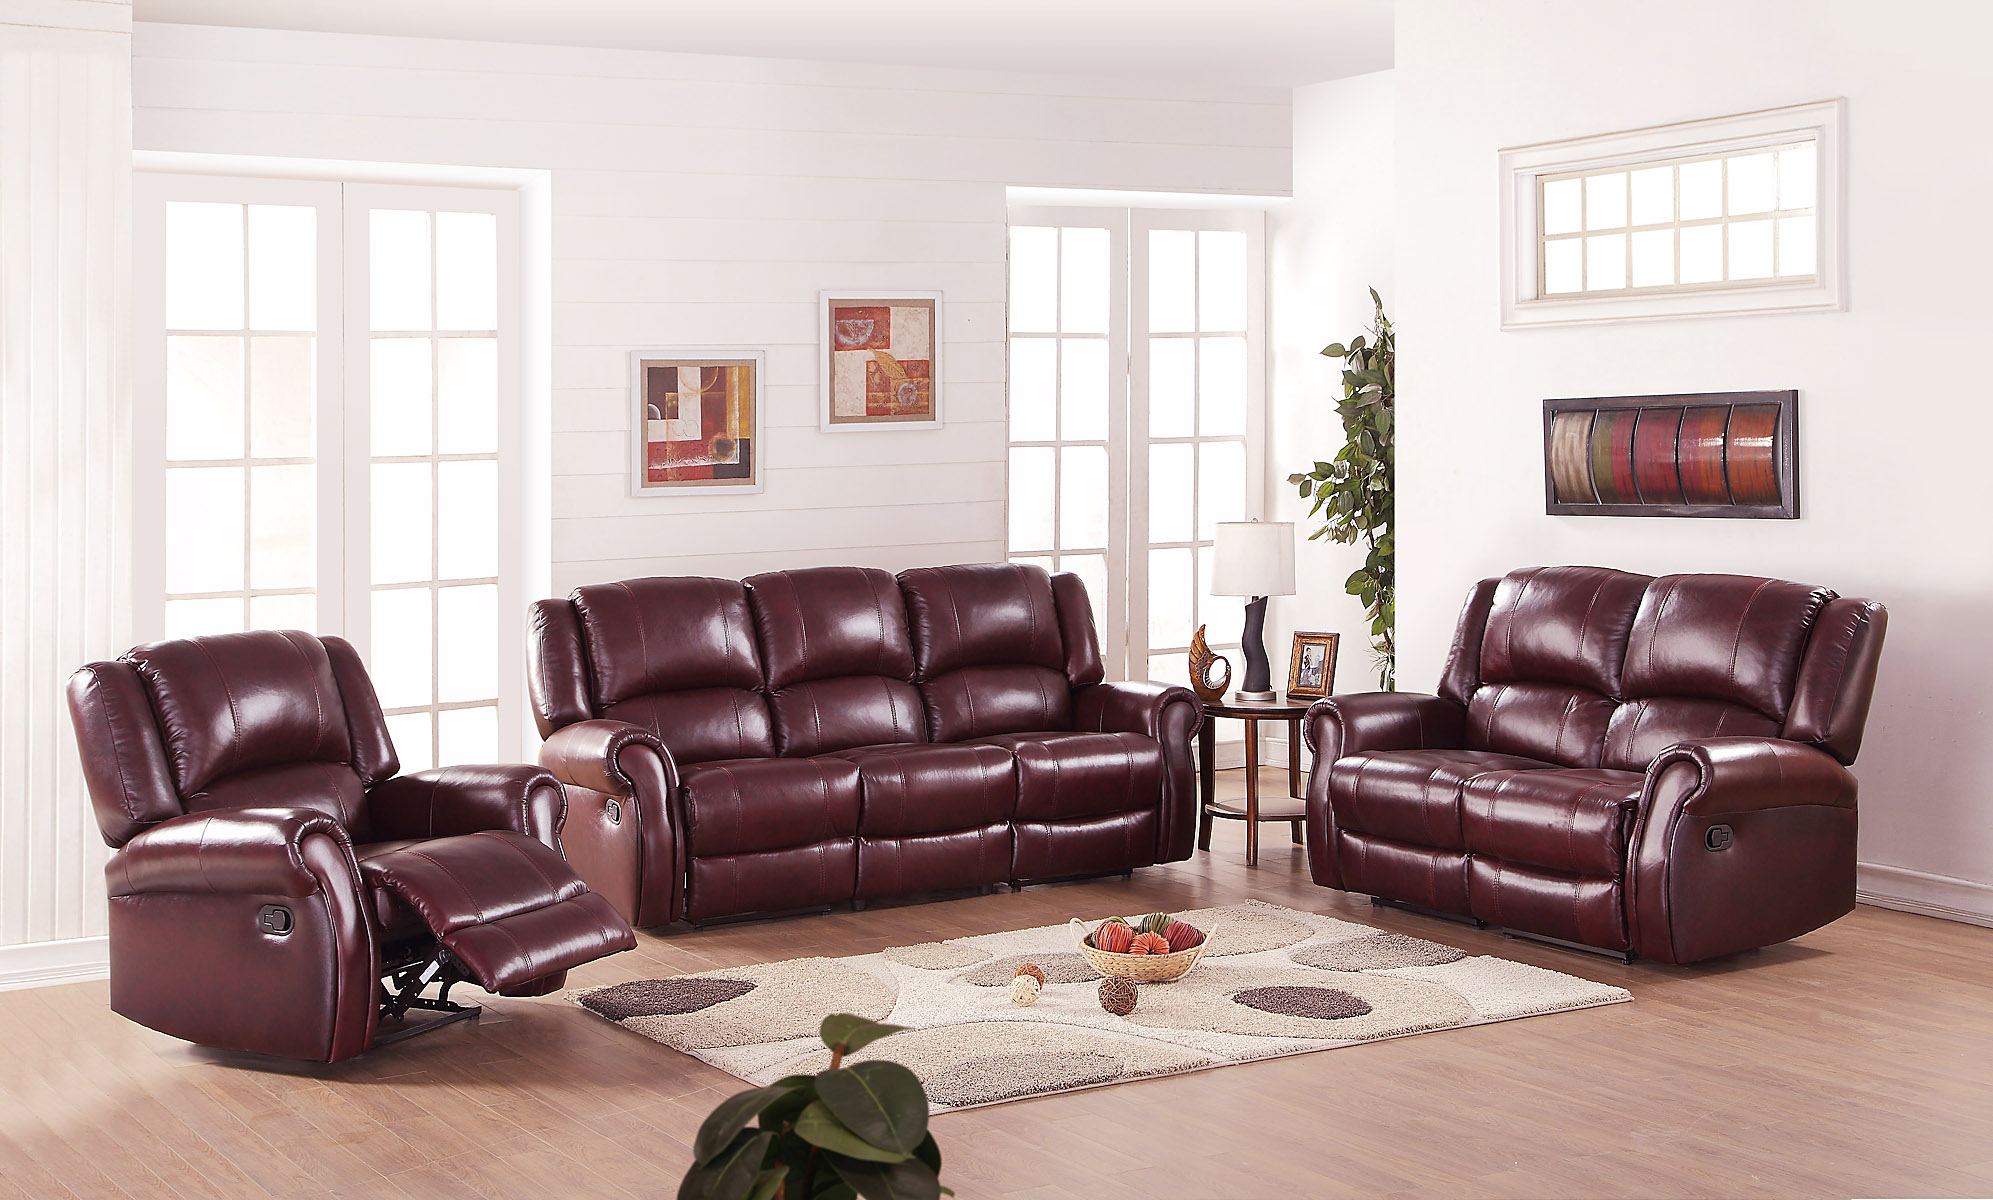 Leather Sofa Oscar Suite